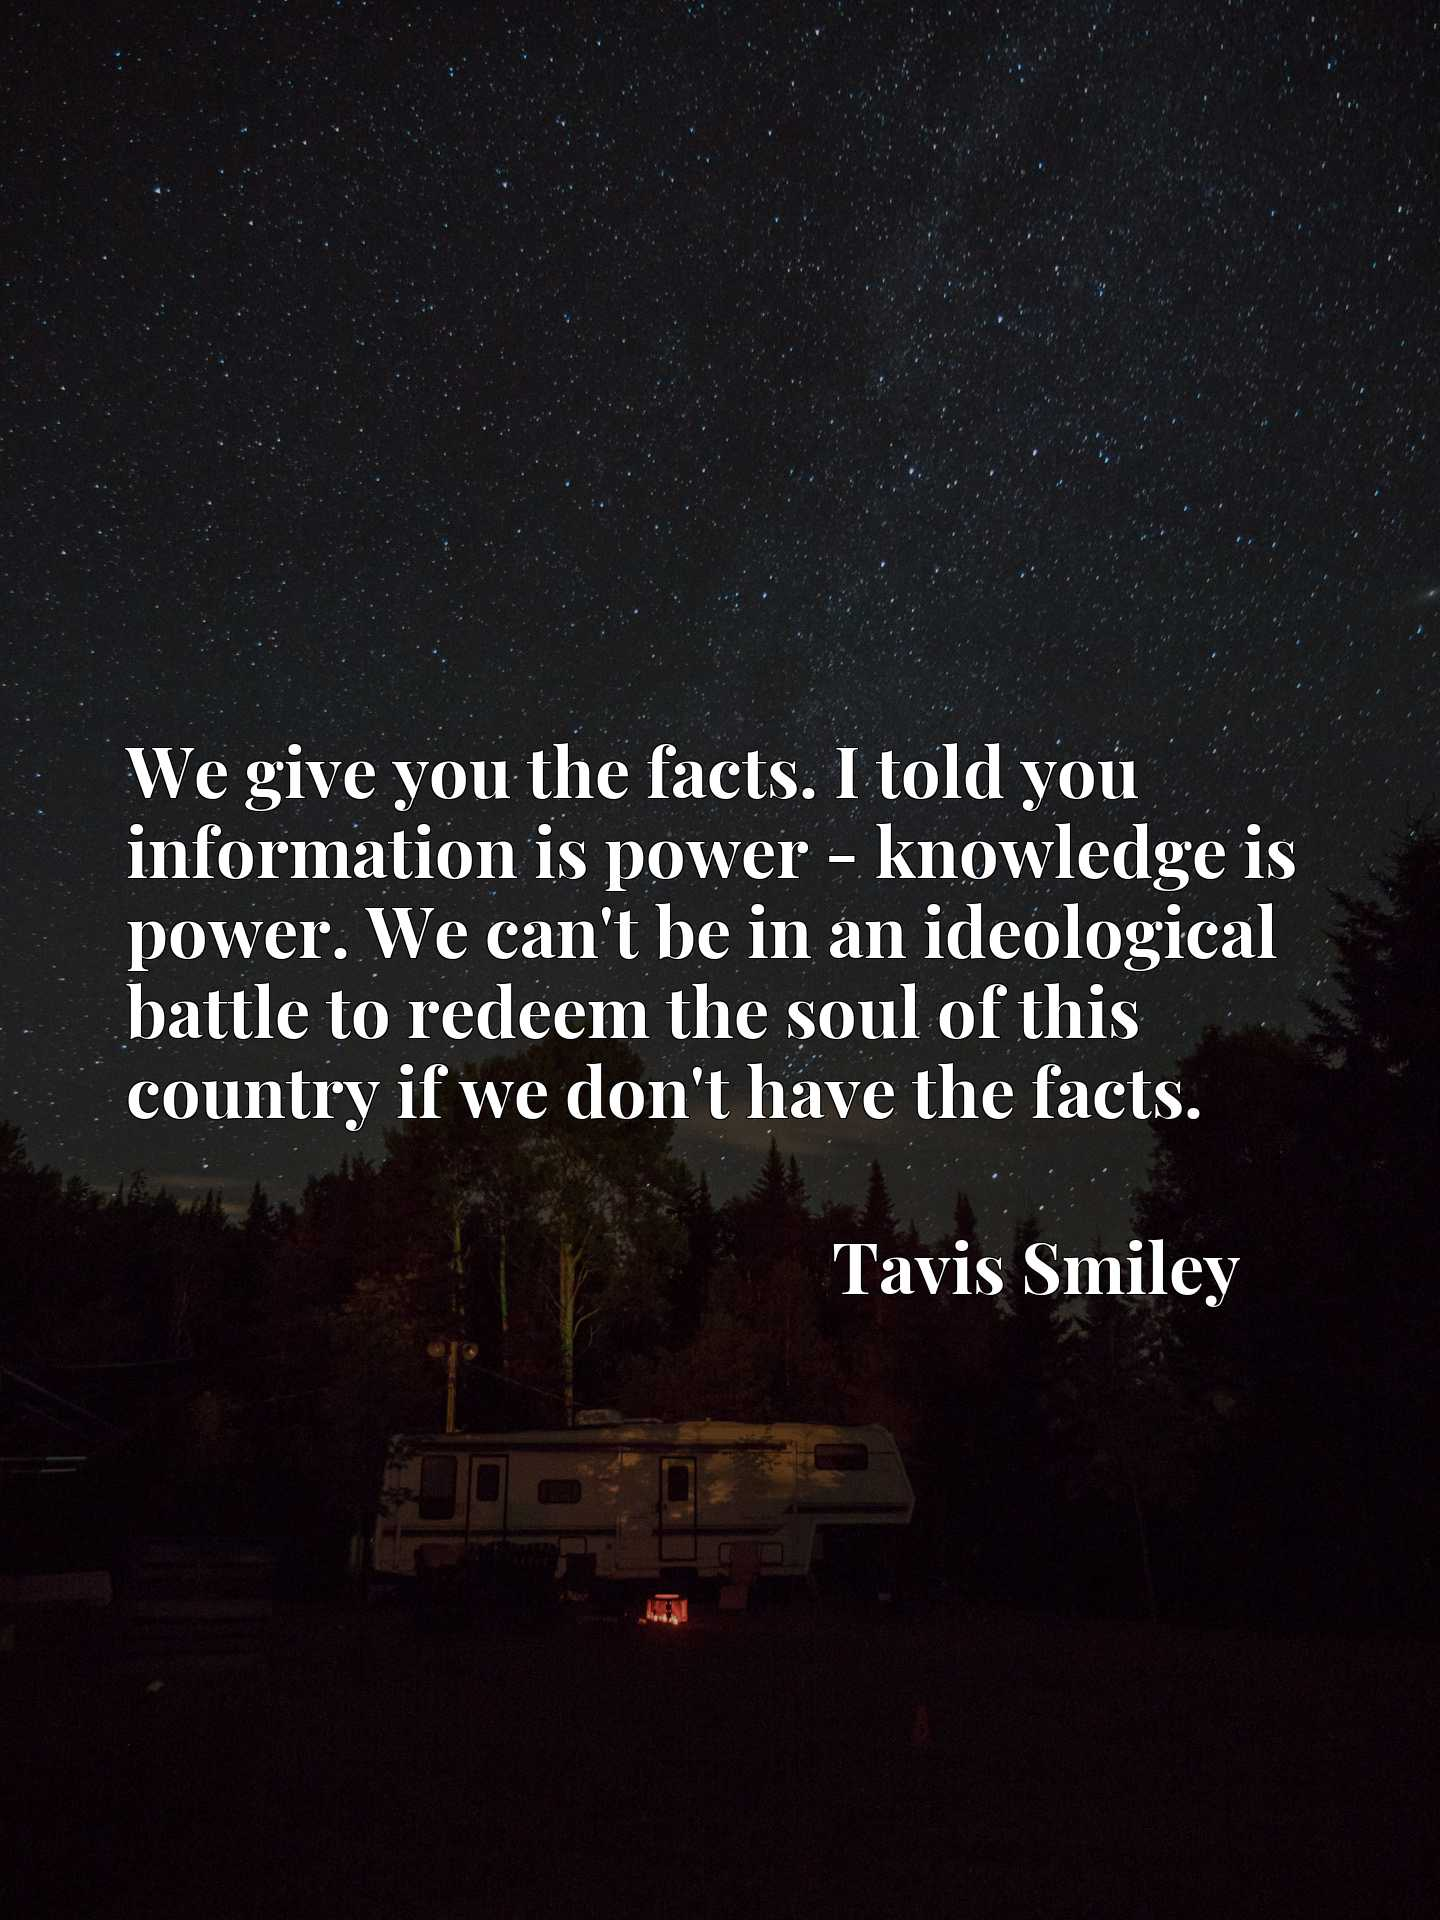 We give you the facts. I told you information is power - knowledge is power. We can't be in an ideological battle to redeem the soul of this country if we don't have the facts.